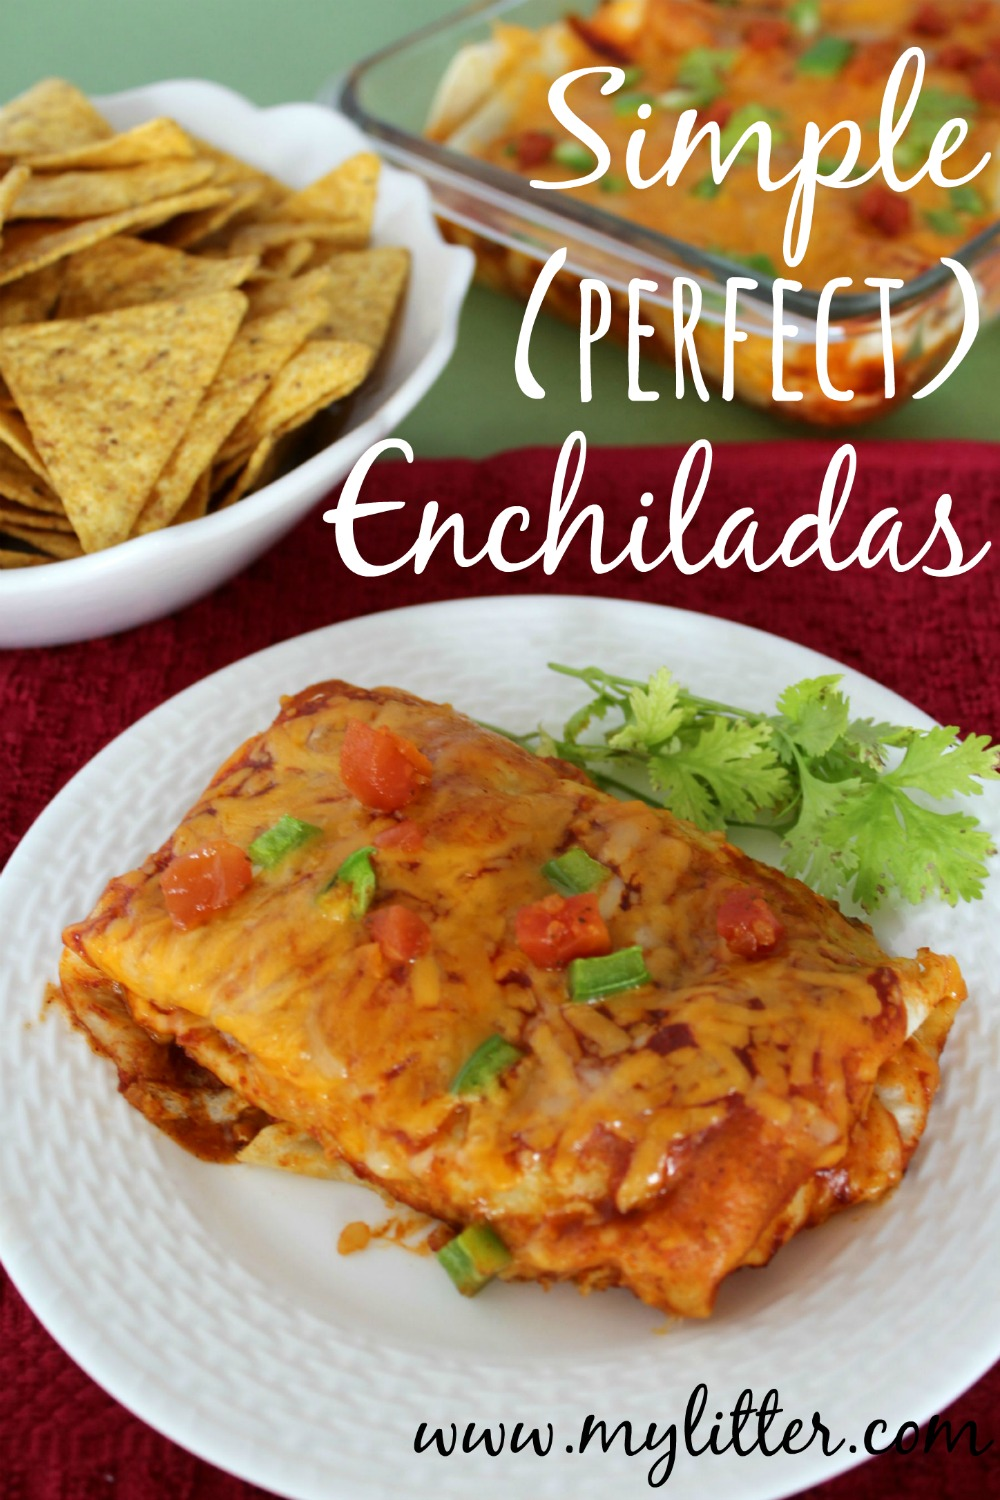 Simple Perfect Enchiladas Recipe - MyLitter - One Deal At A Time